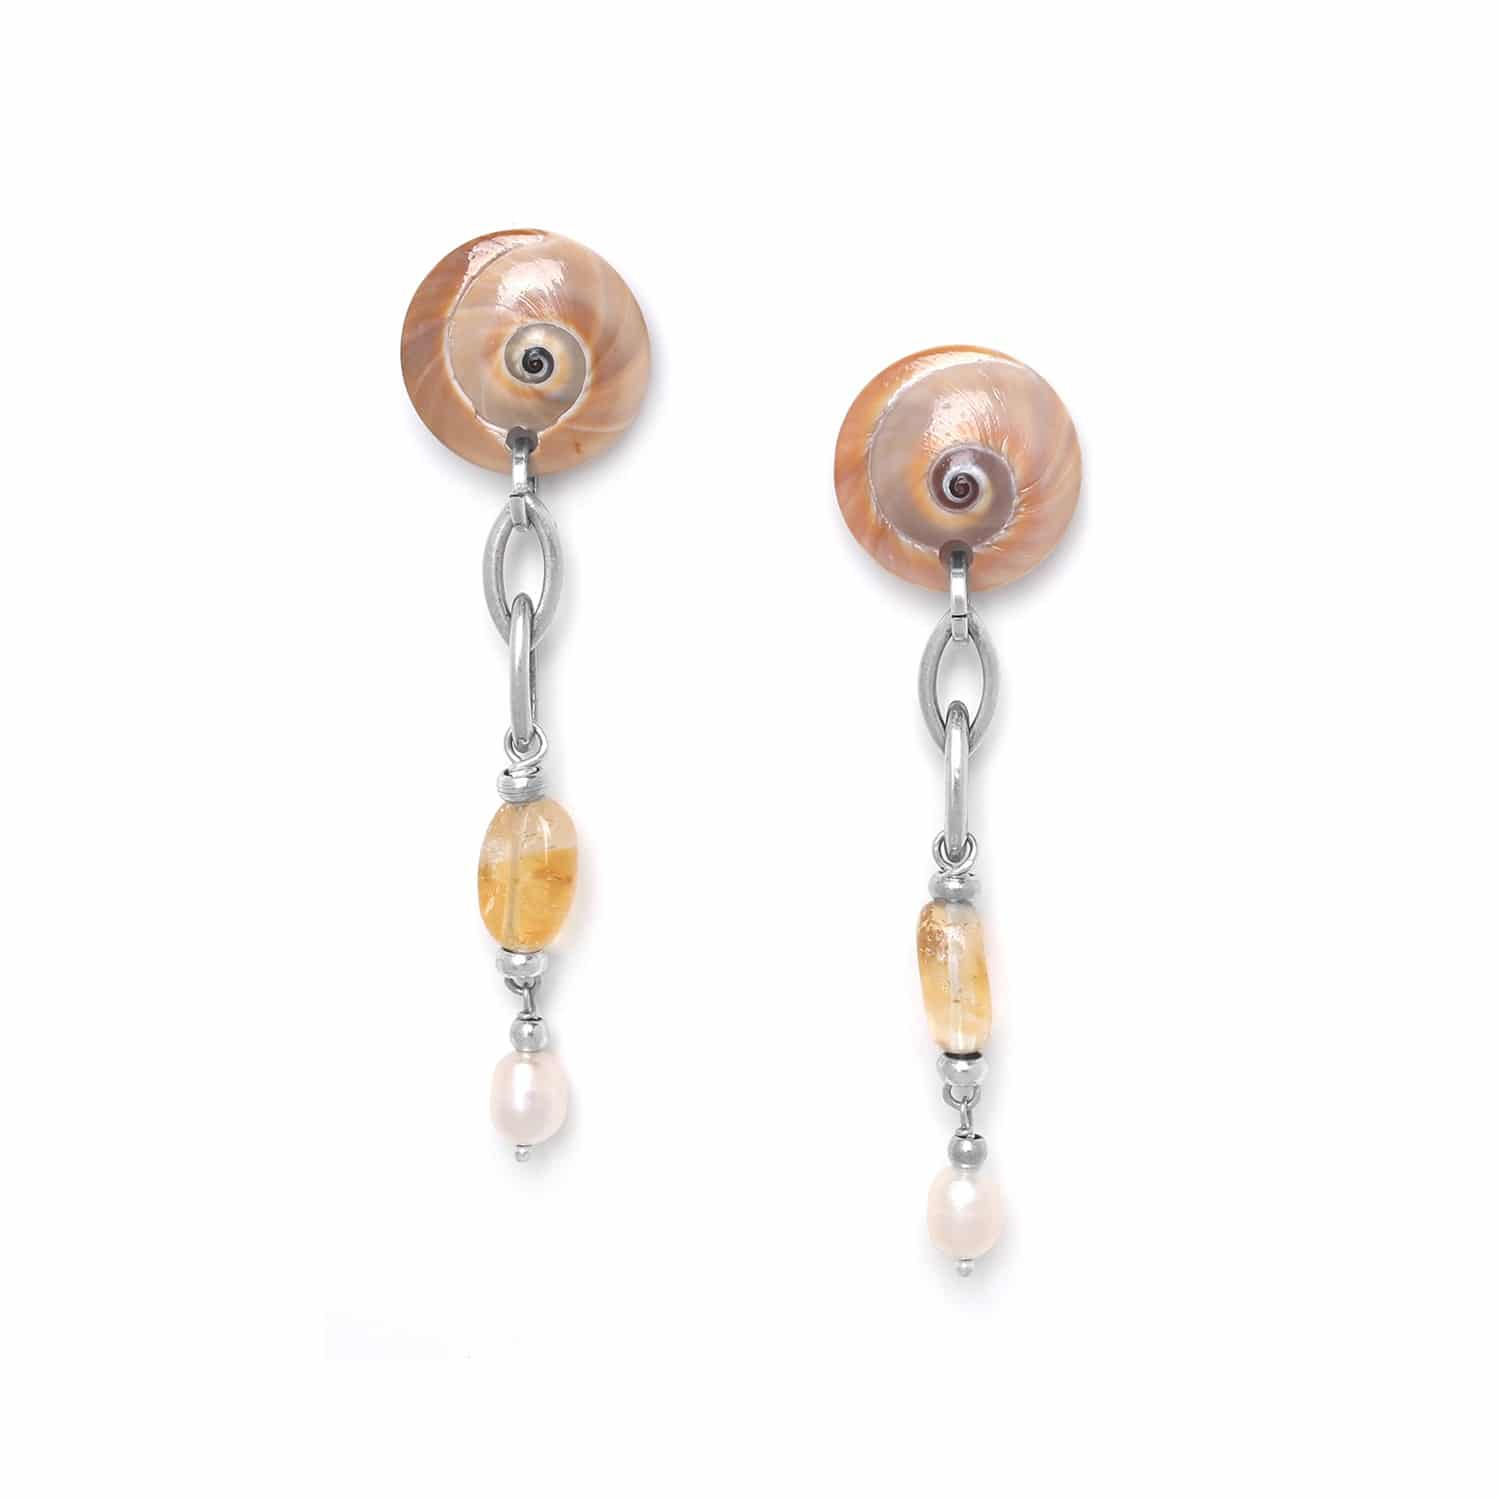 MAKATEA citrine & pearl earrings